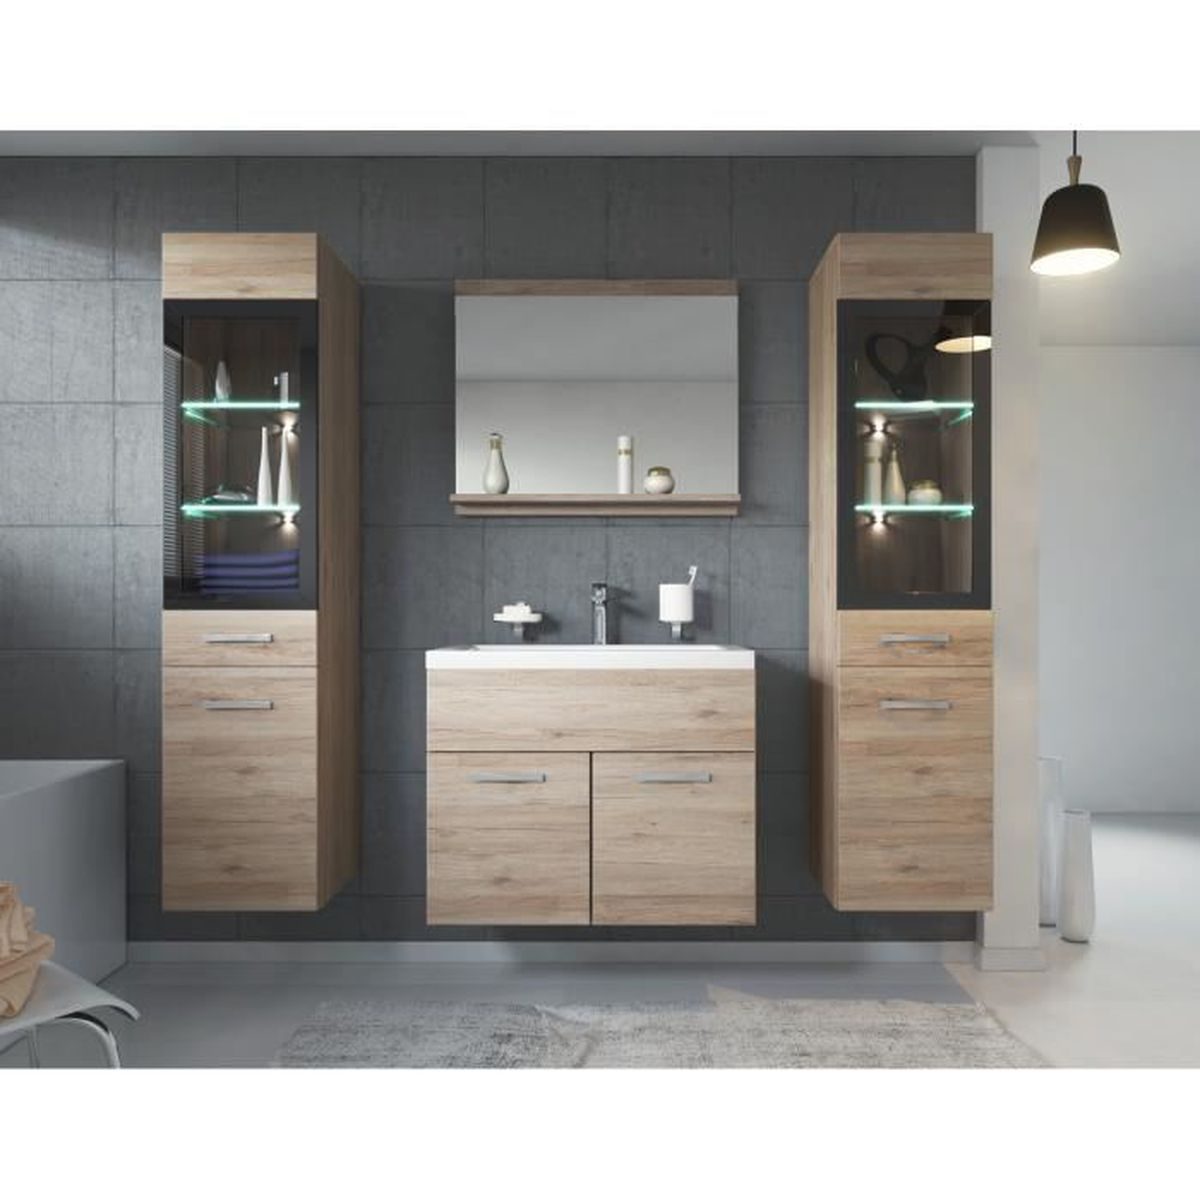 meuble salle de bain sans vasque achat vente meuble. Black Bedroom Furniture Sets. Home Design Ideas